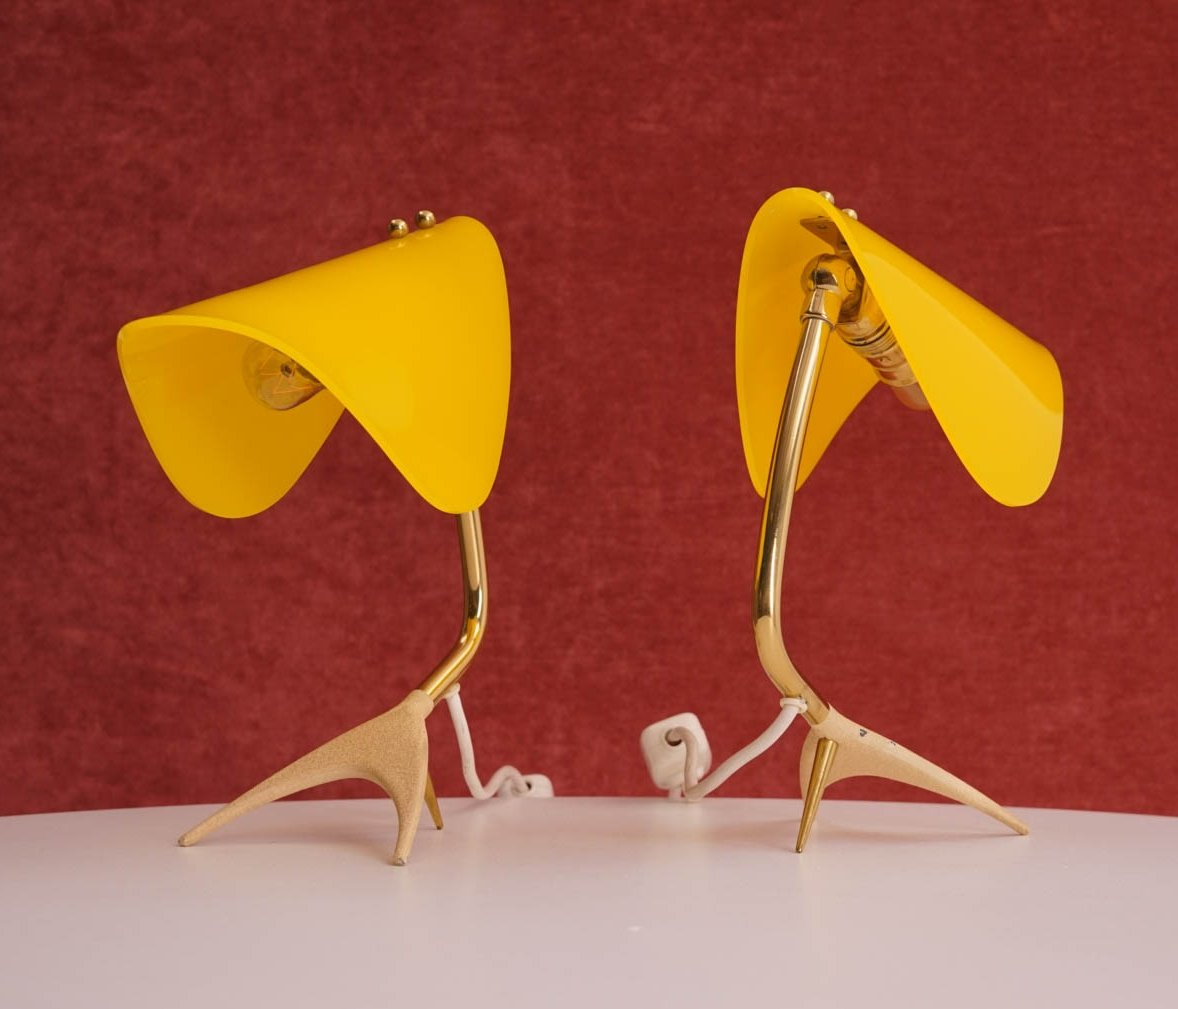 Pair Of Table Lamp With Yellow Shades 70414